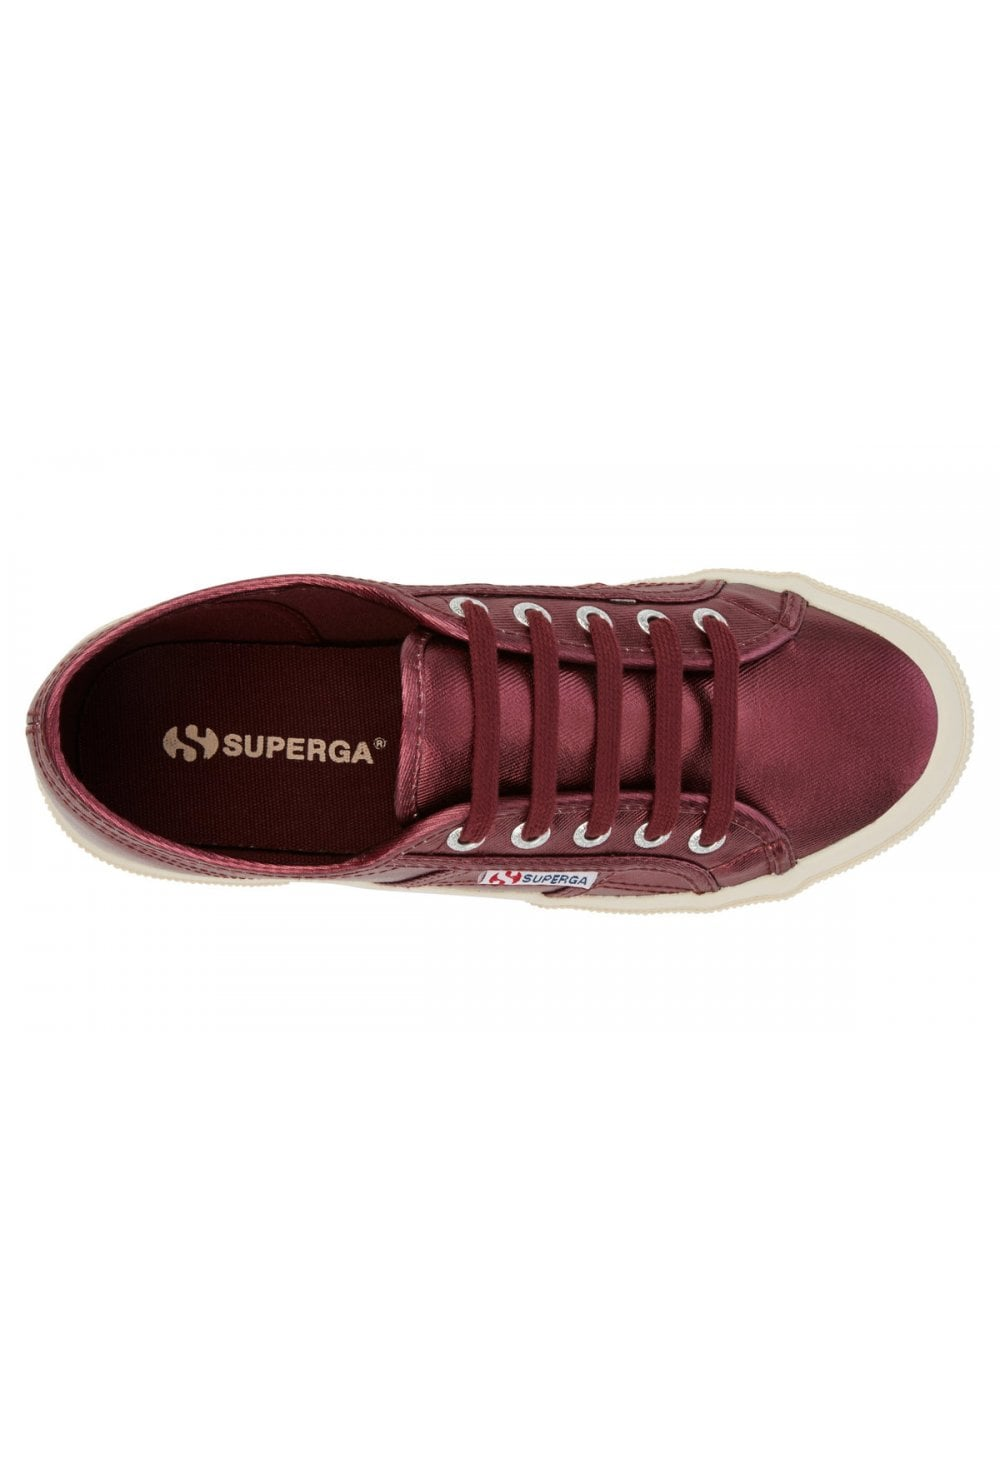 Superga 2750 COTMETU BORDEAUX